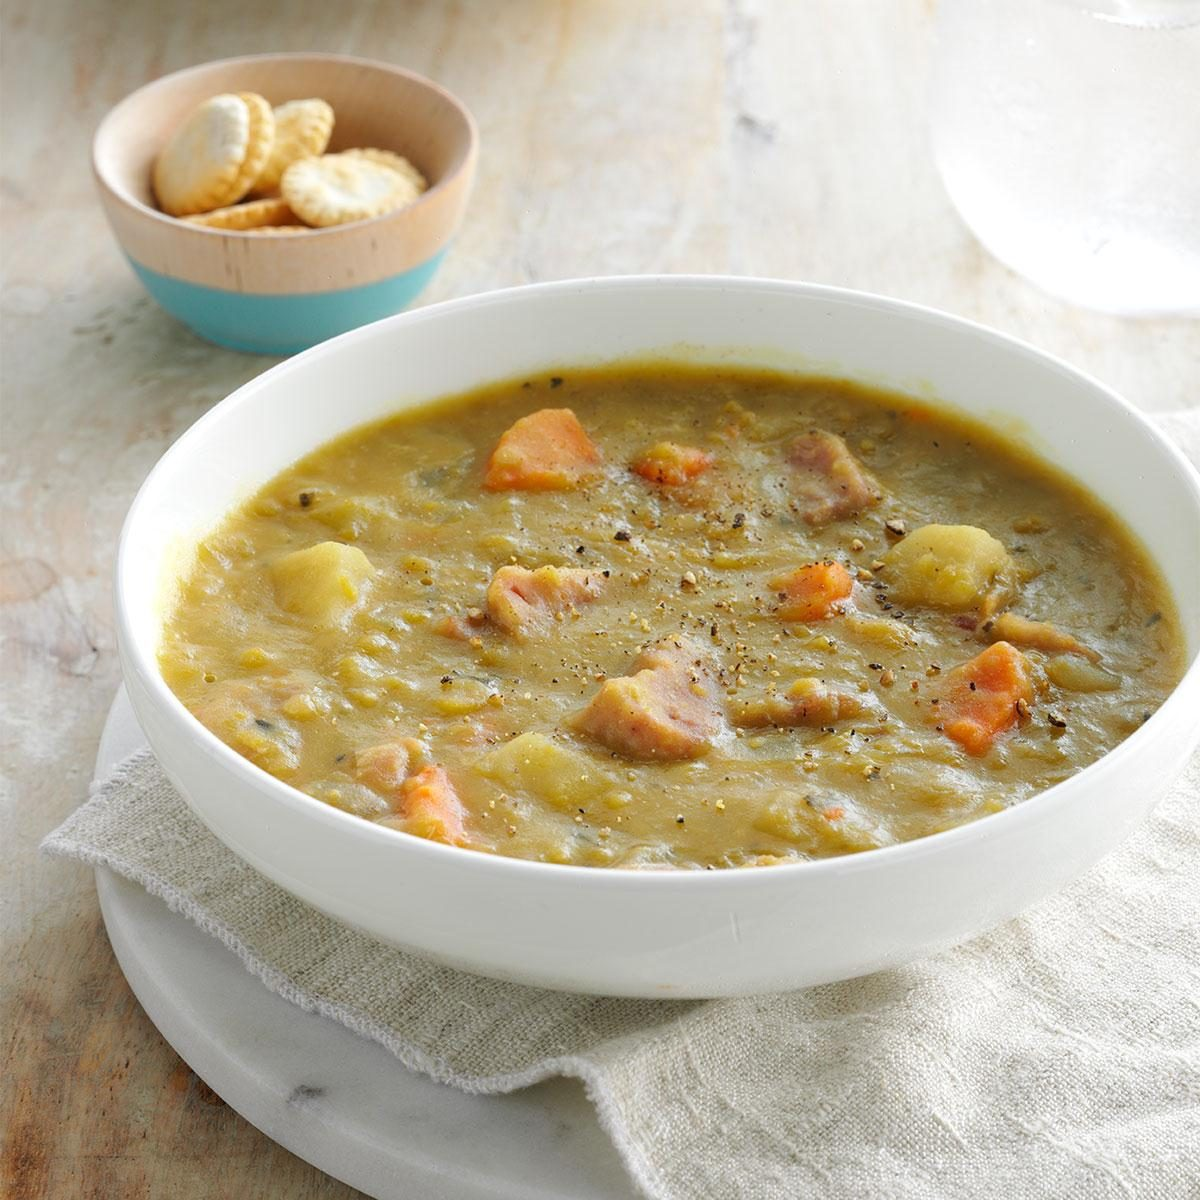 Day 28: Slow-Cooked Split Pea Soup